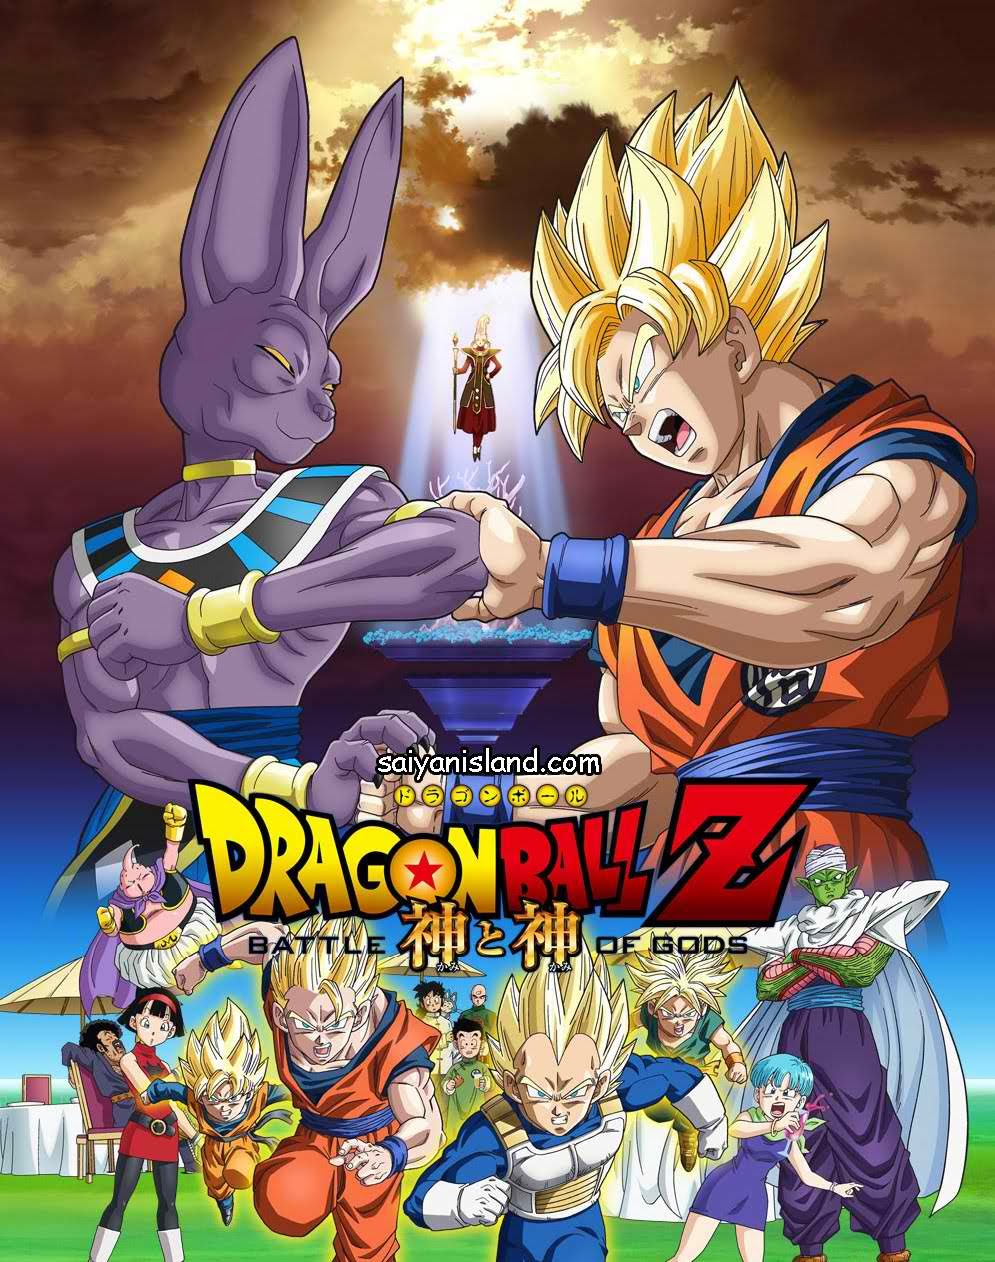 DBZ: Battle of Gods movie official poster